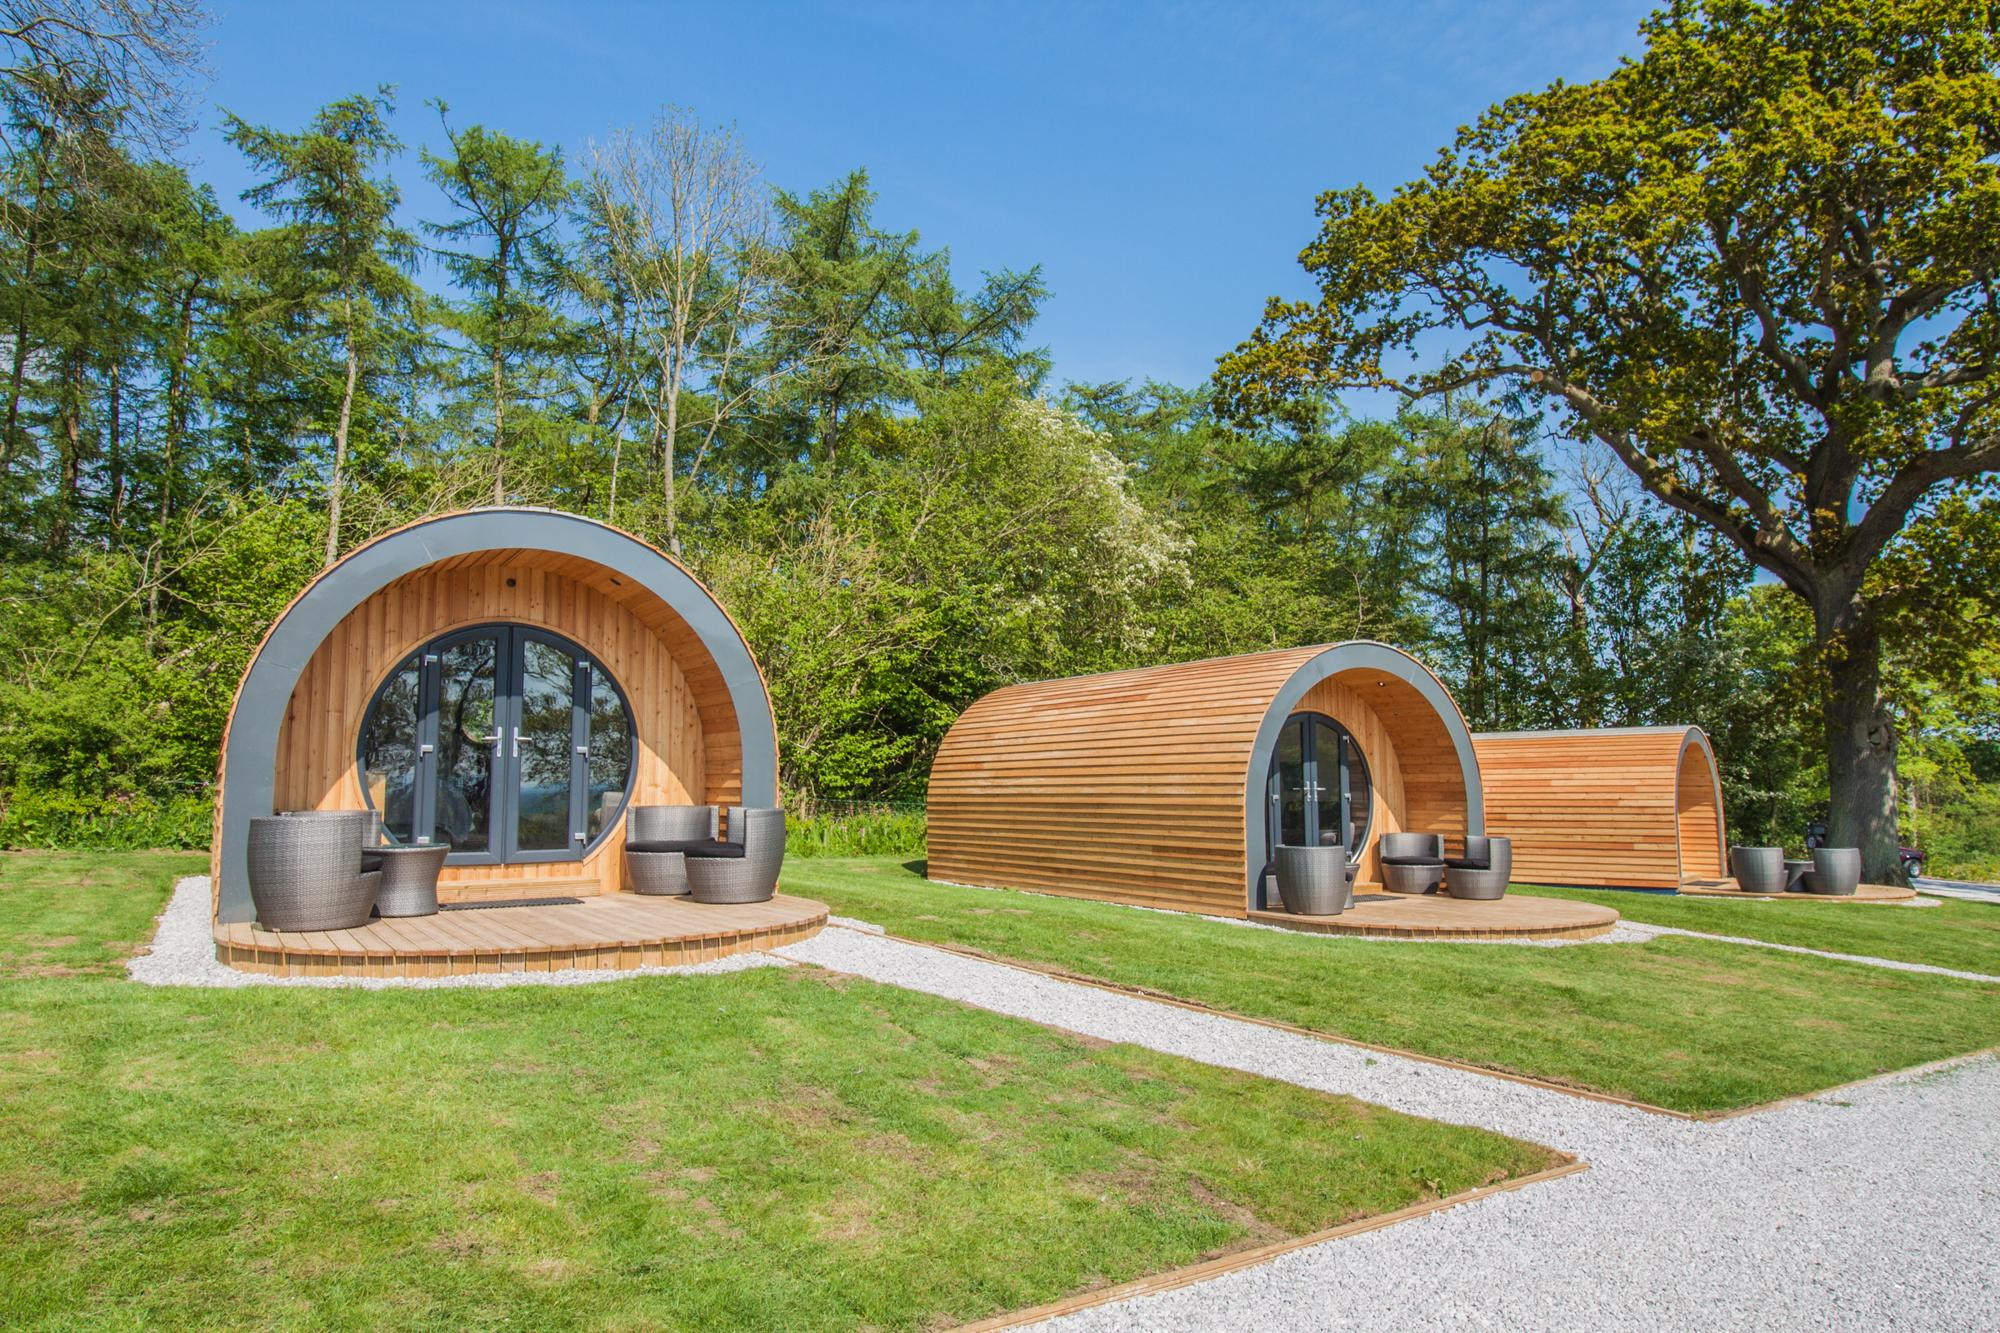 Glamping in Pickering holidays at Cool Camping